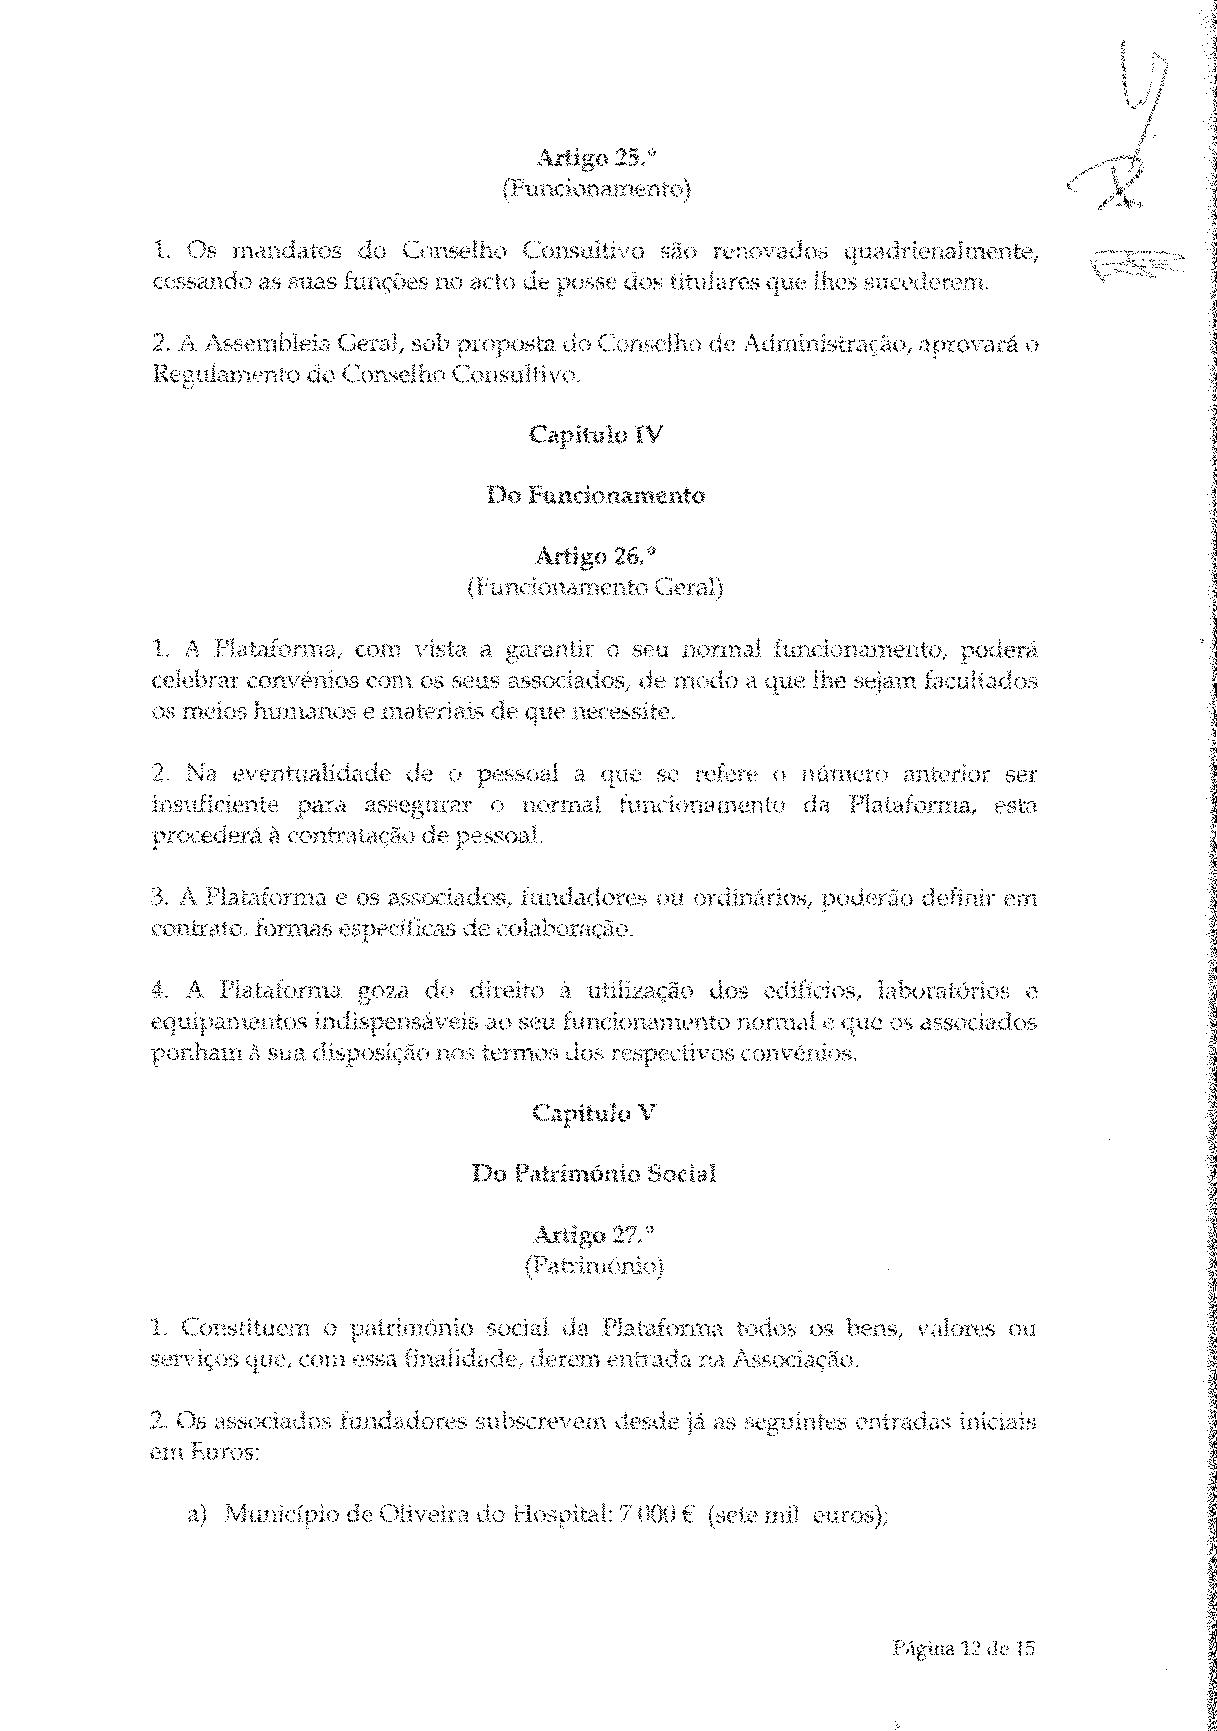 509402267_Associacao_BLC_rectificacao (5)-page-018